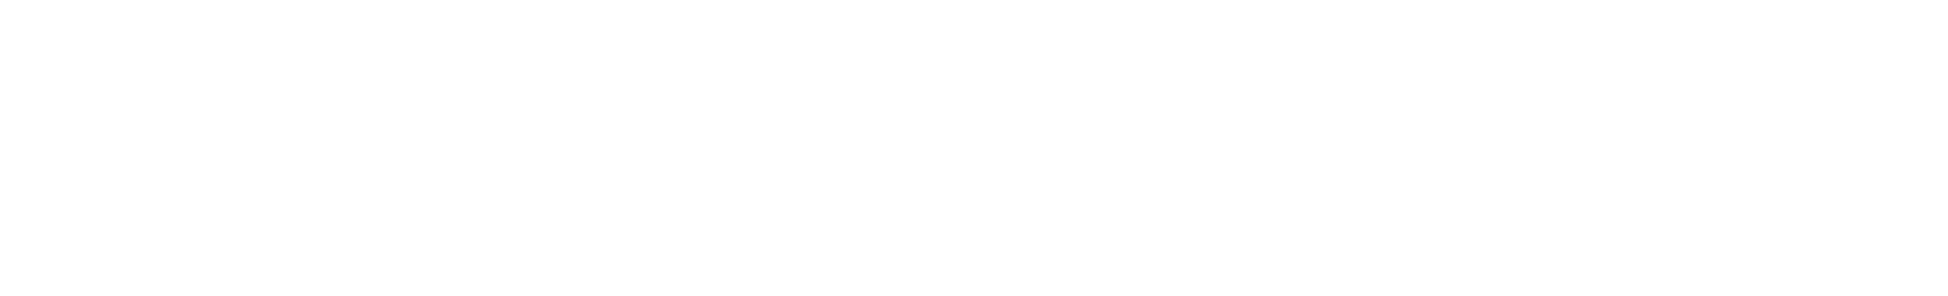 Ford Chassis Cab | Build & Price Your New Ford Vehicle in